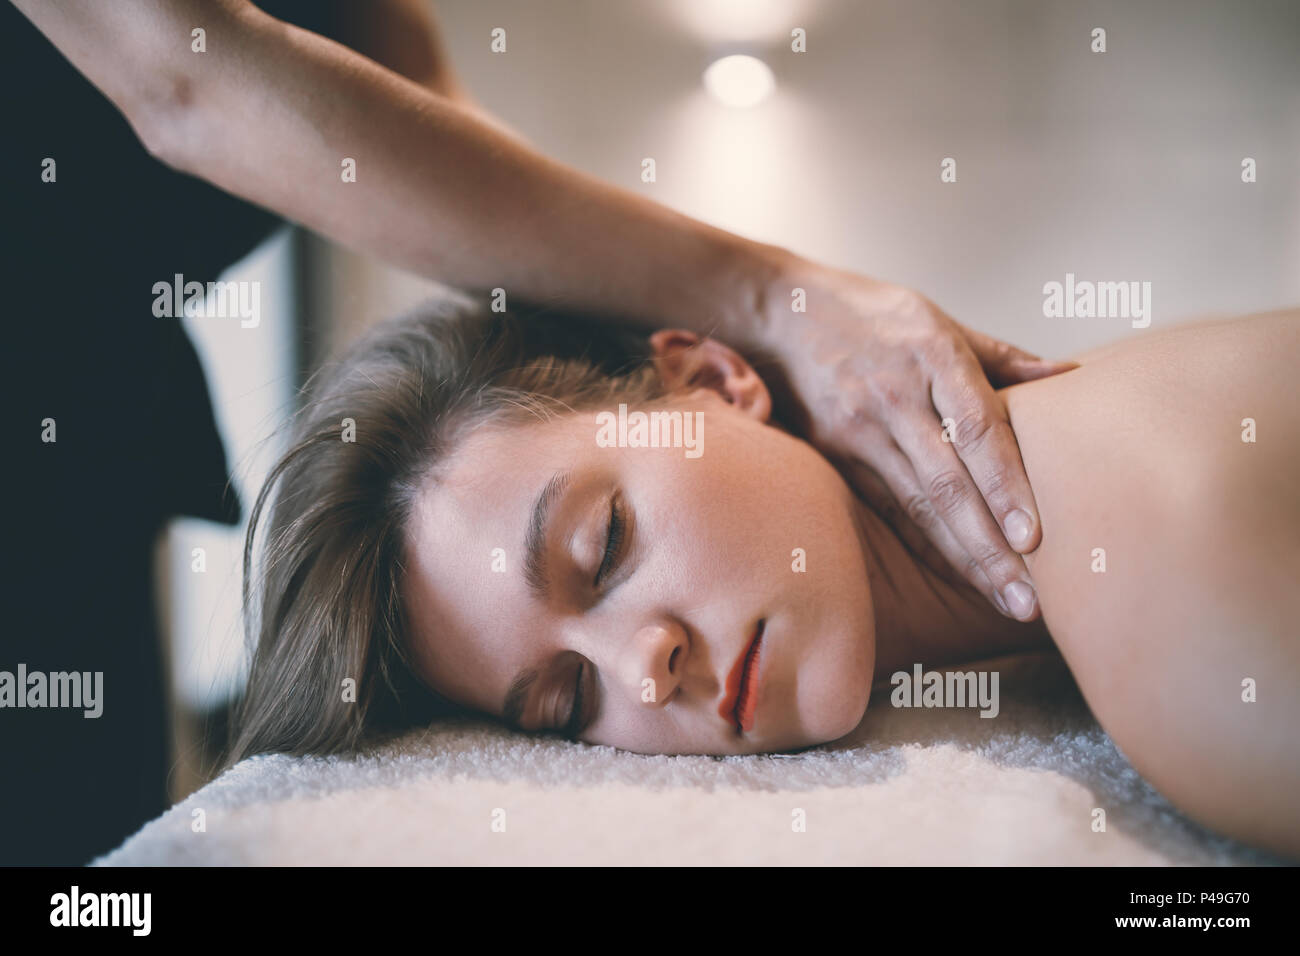 Rejuvenating relaxing massage by masseur - Stock Image